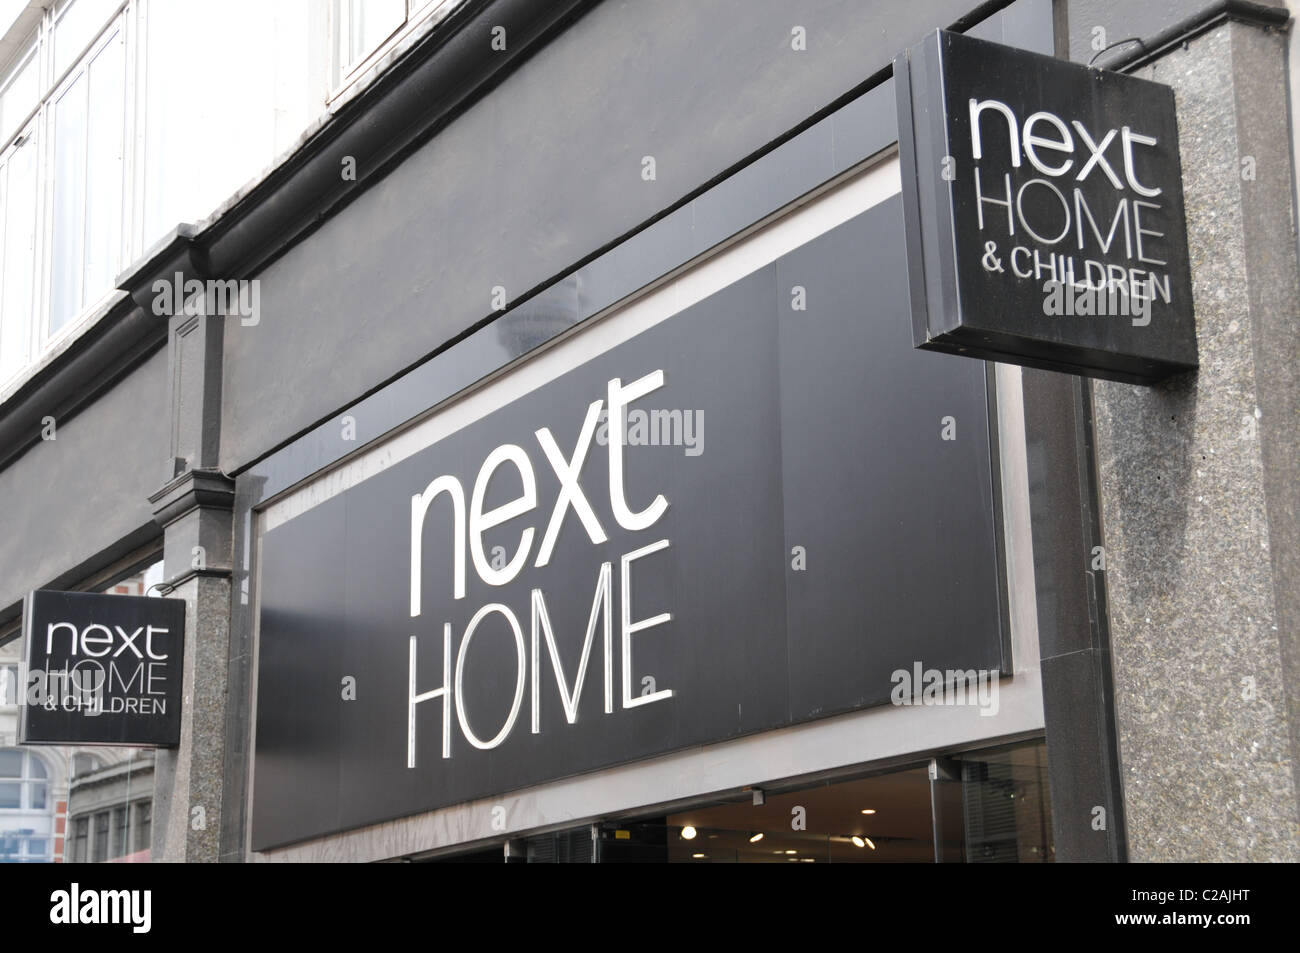 Next Home Store Logo Shop Sign Furnishings Fabrics Rooms Decoration Lamps  Sofas Beds Tables Chairs